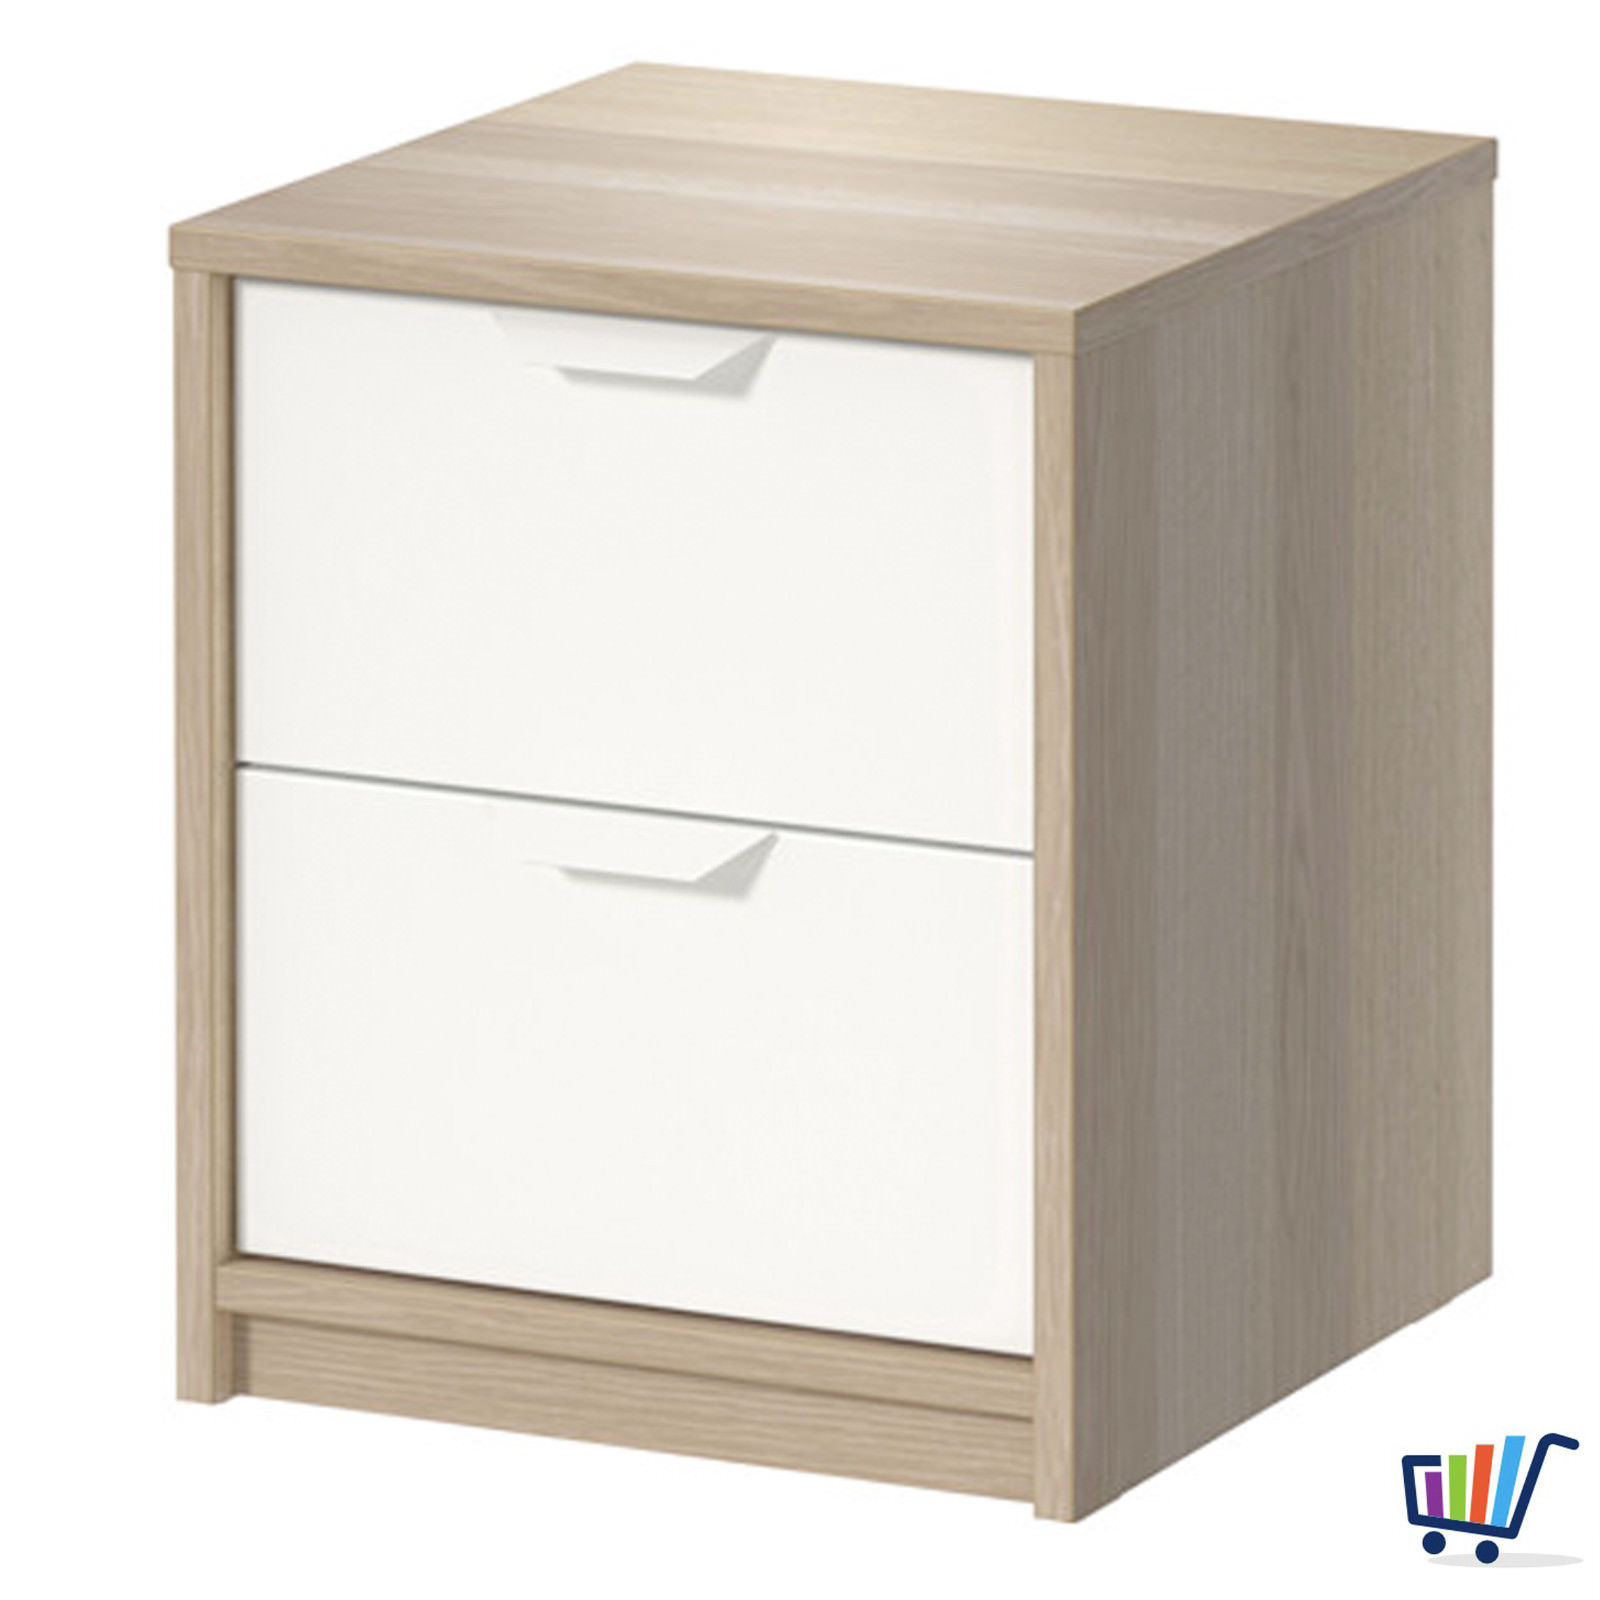 ikea askvoll kommode mit 2 schubladen eiche nachtkonsole nachttisch schrank neu traumfabrik xxl. Black Bedroom Furniture Sets. Home Design Ideas